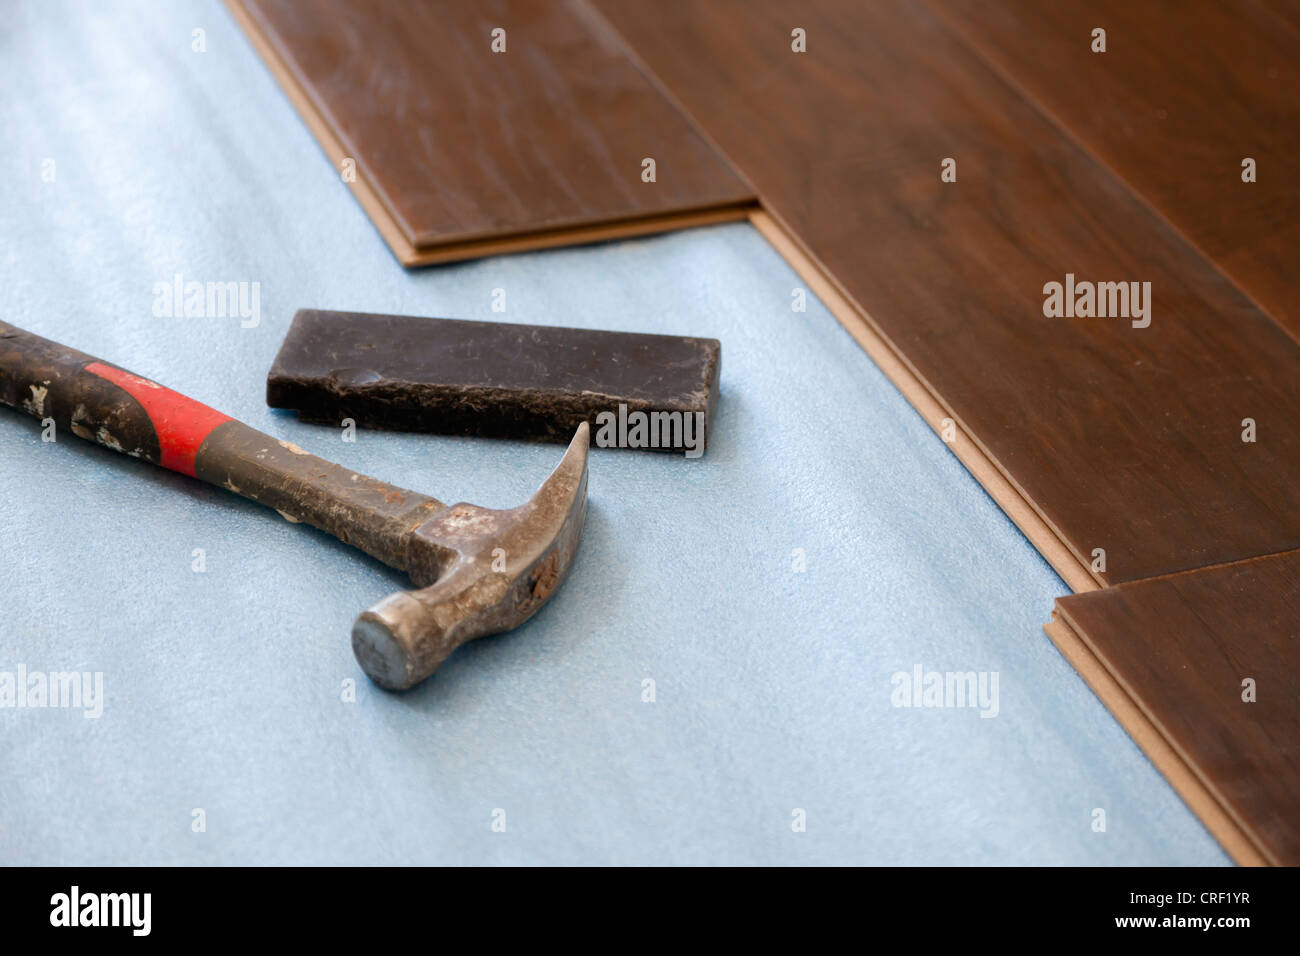 Hammer and Block with New Laminate Flooring Abstract. - Stock Image